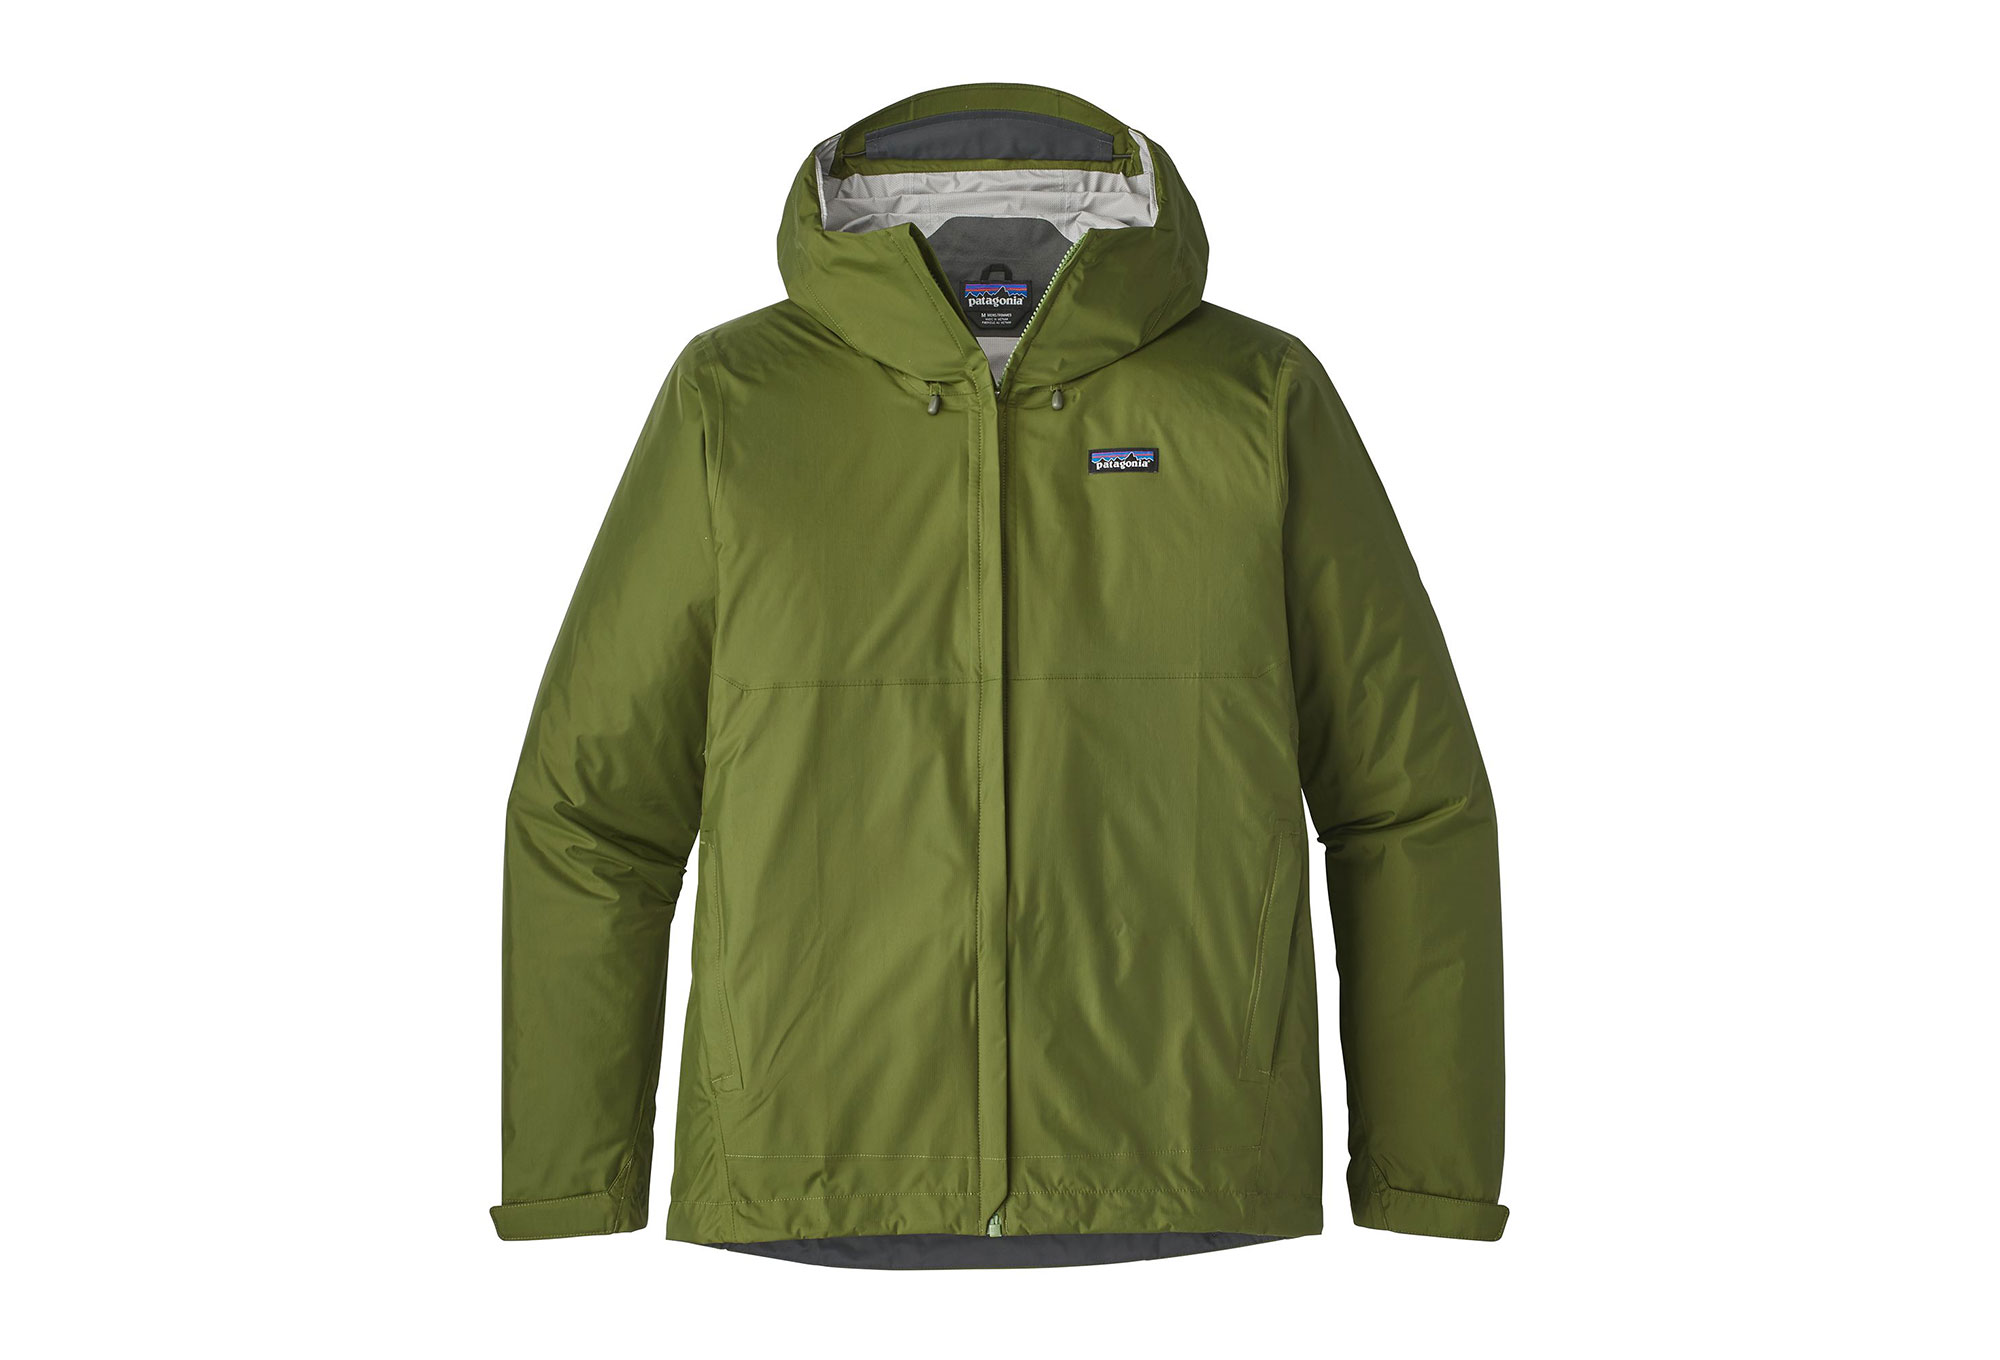 Patagonia Torrentshell Jacket Sprouted Green  ca0791bff